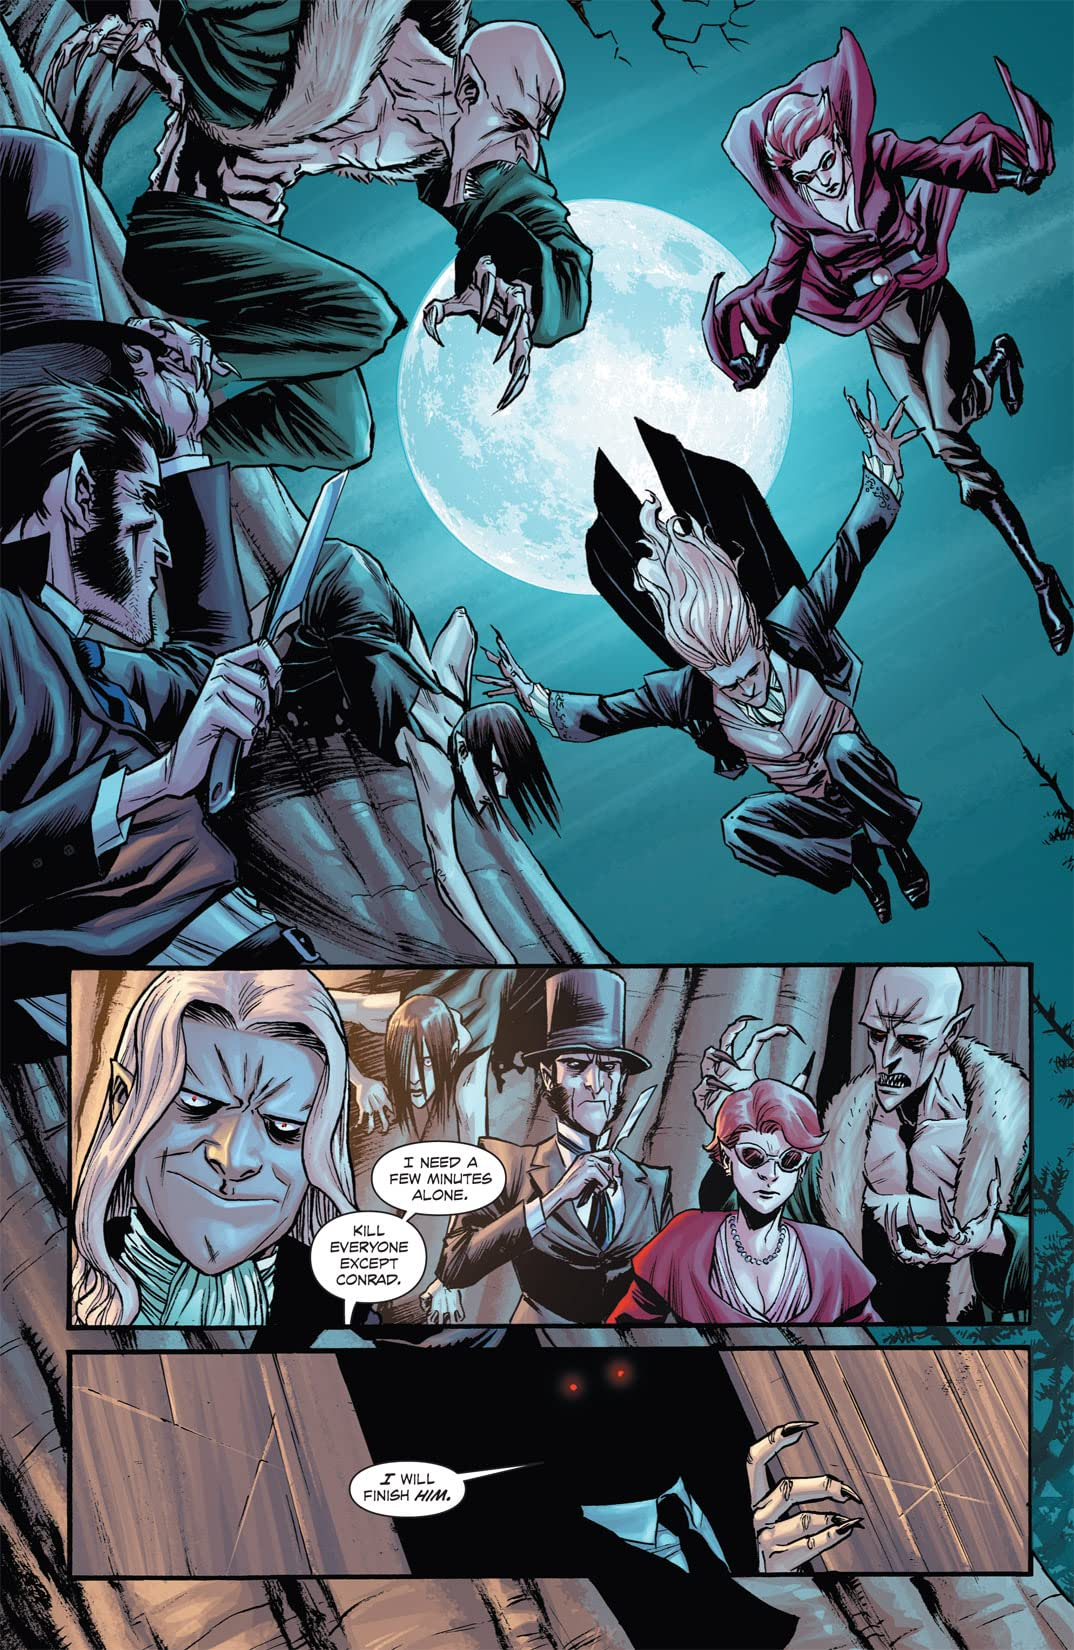 Dracula: The Company of Monsters #11